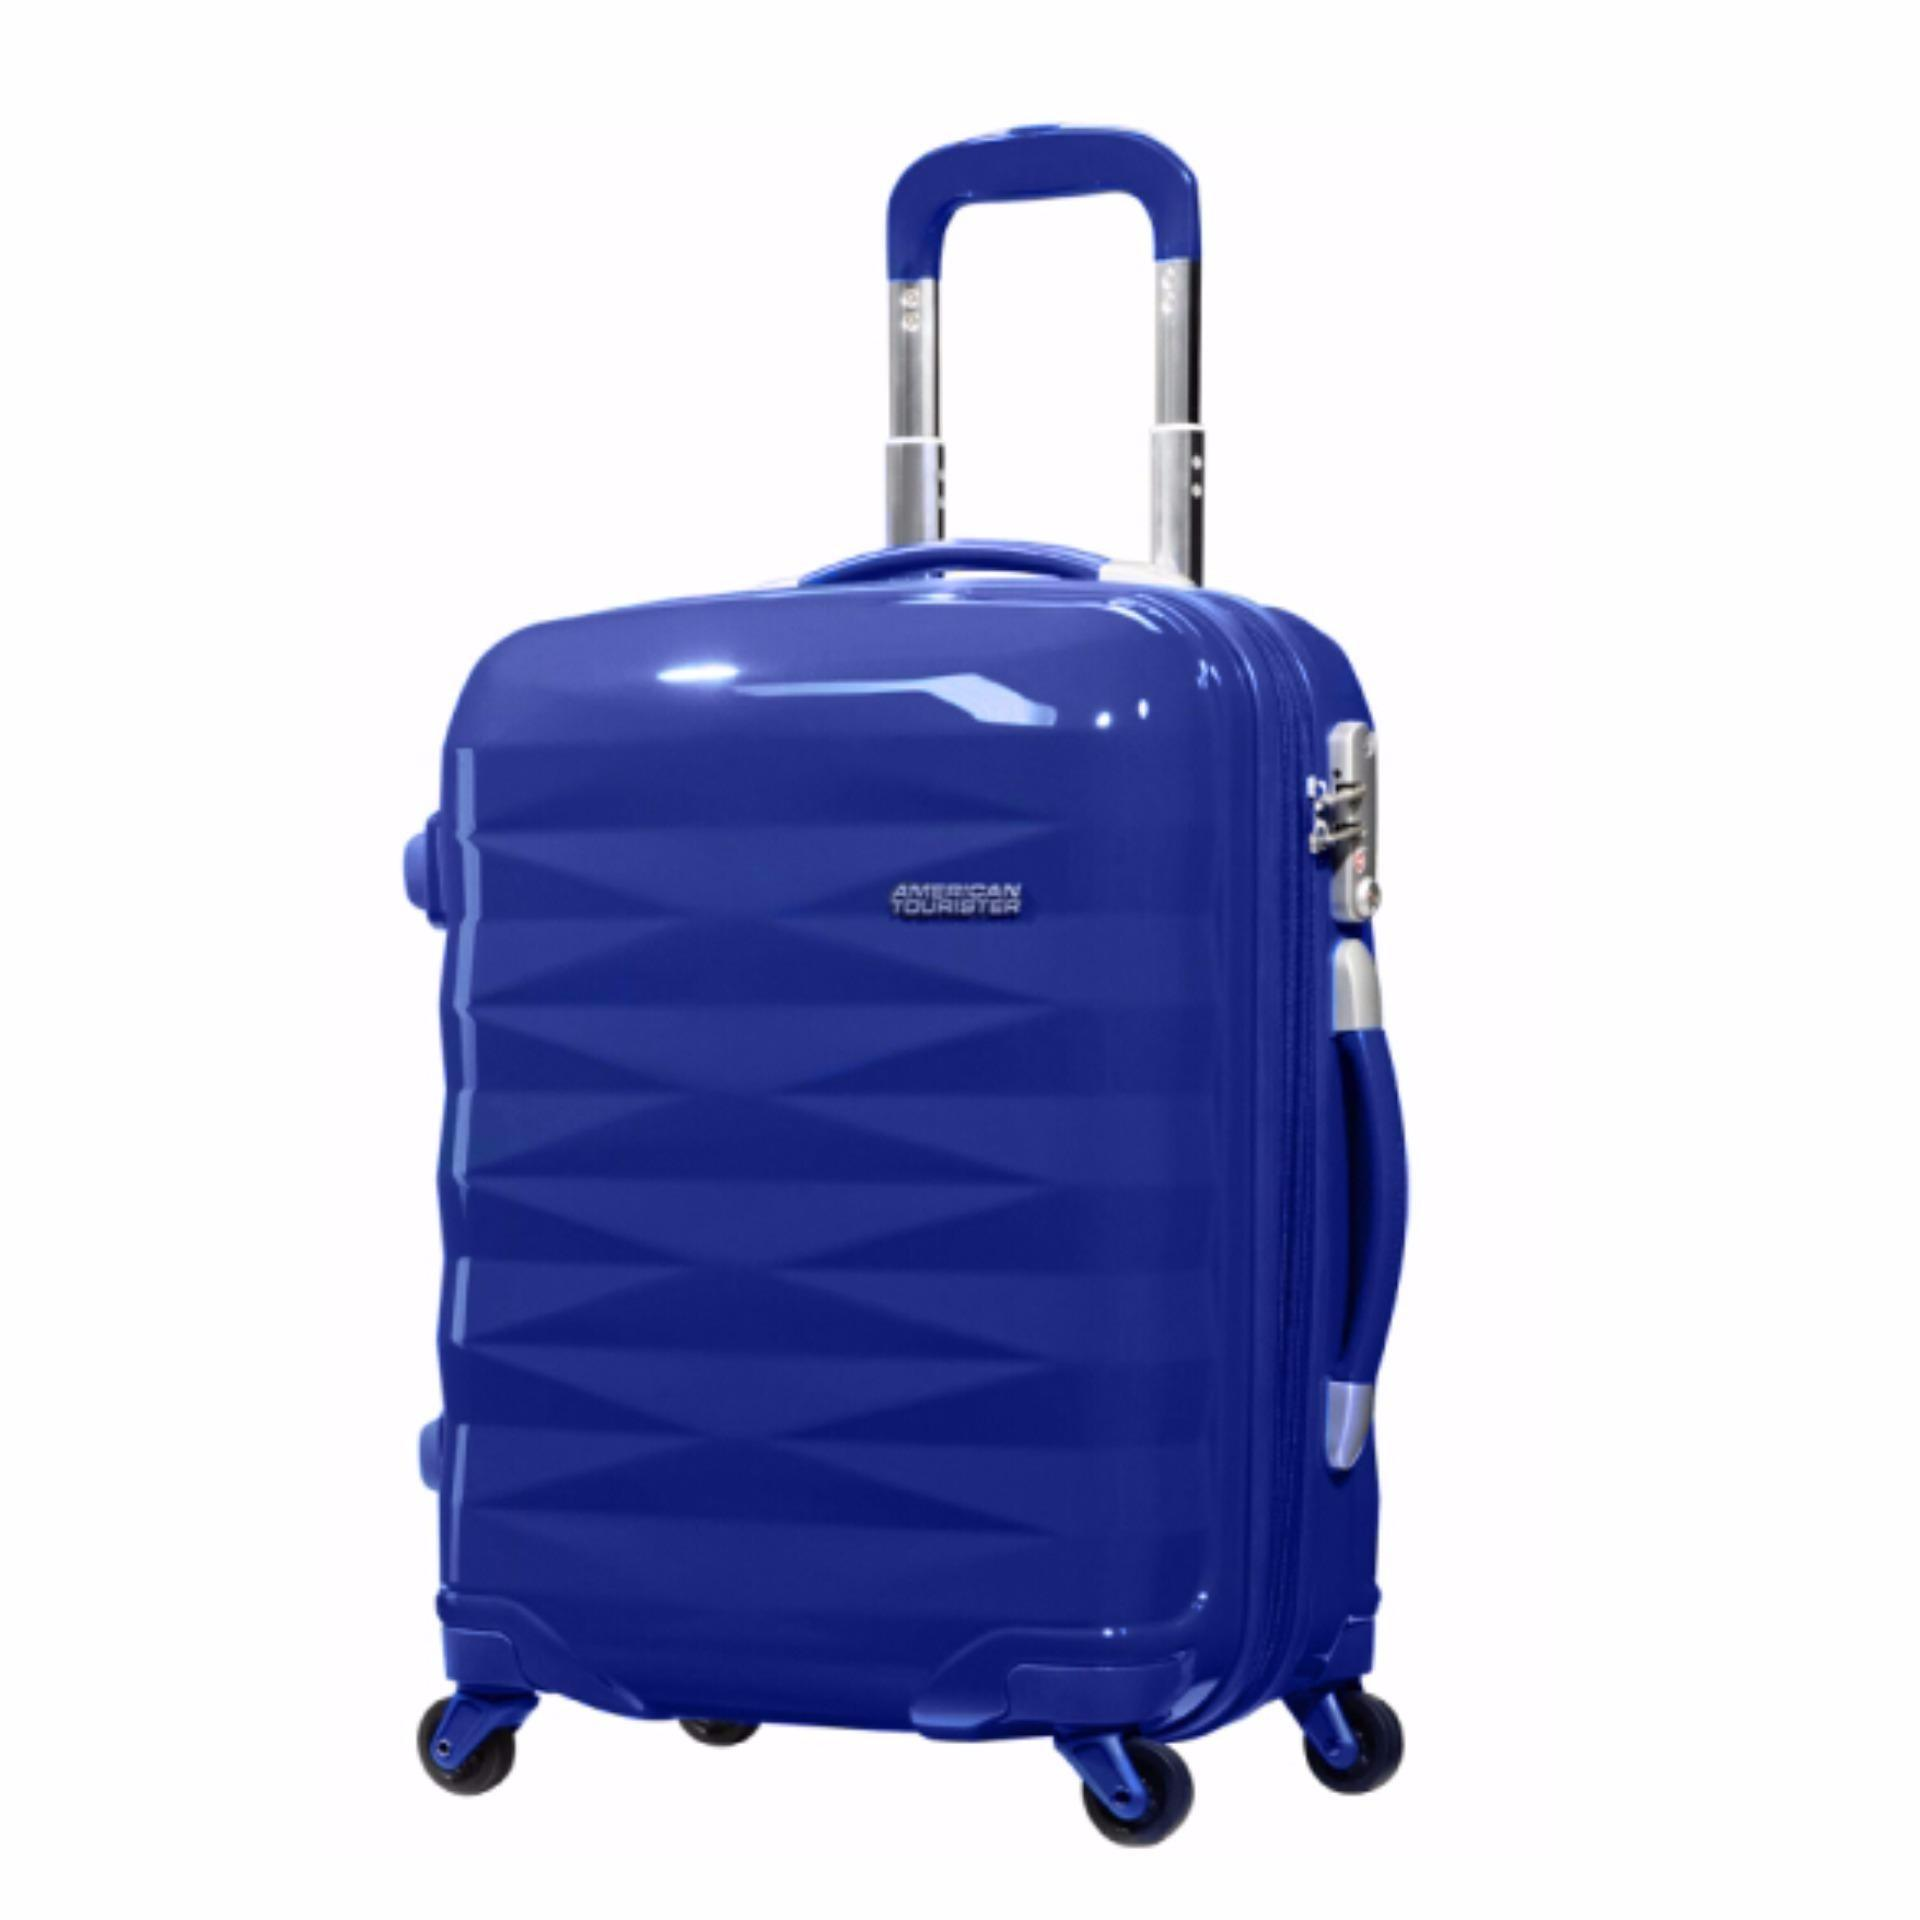 Compare Price American Tourister Crystalite Spinner 55 20 Tsa On Singapore